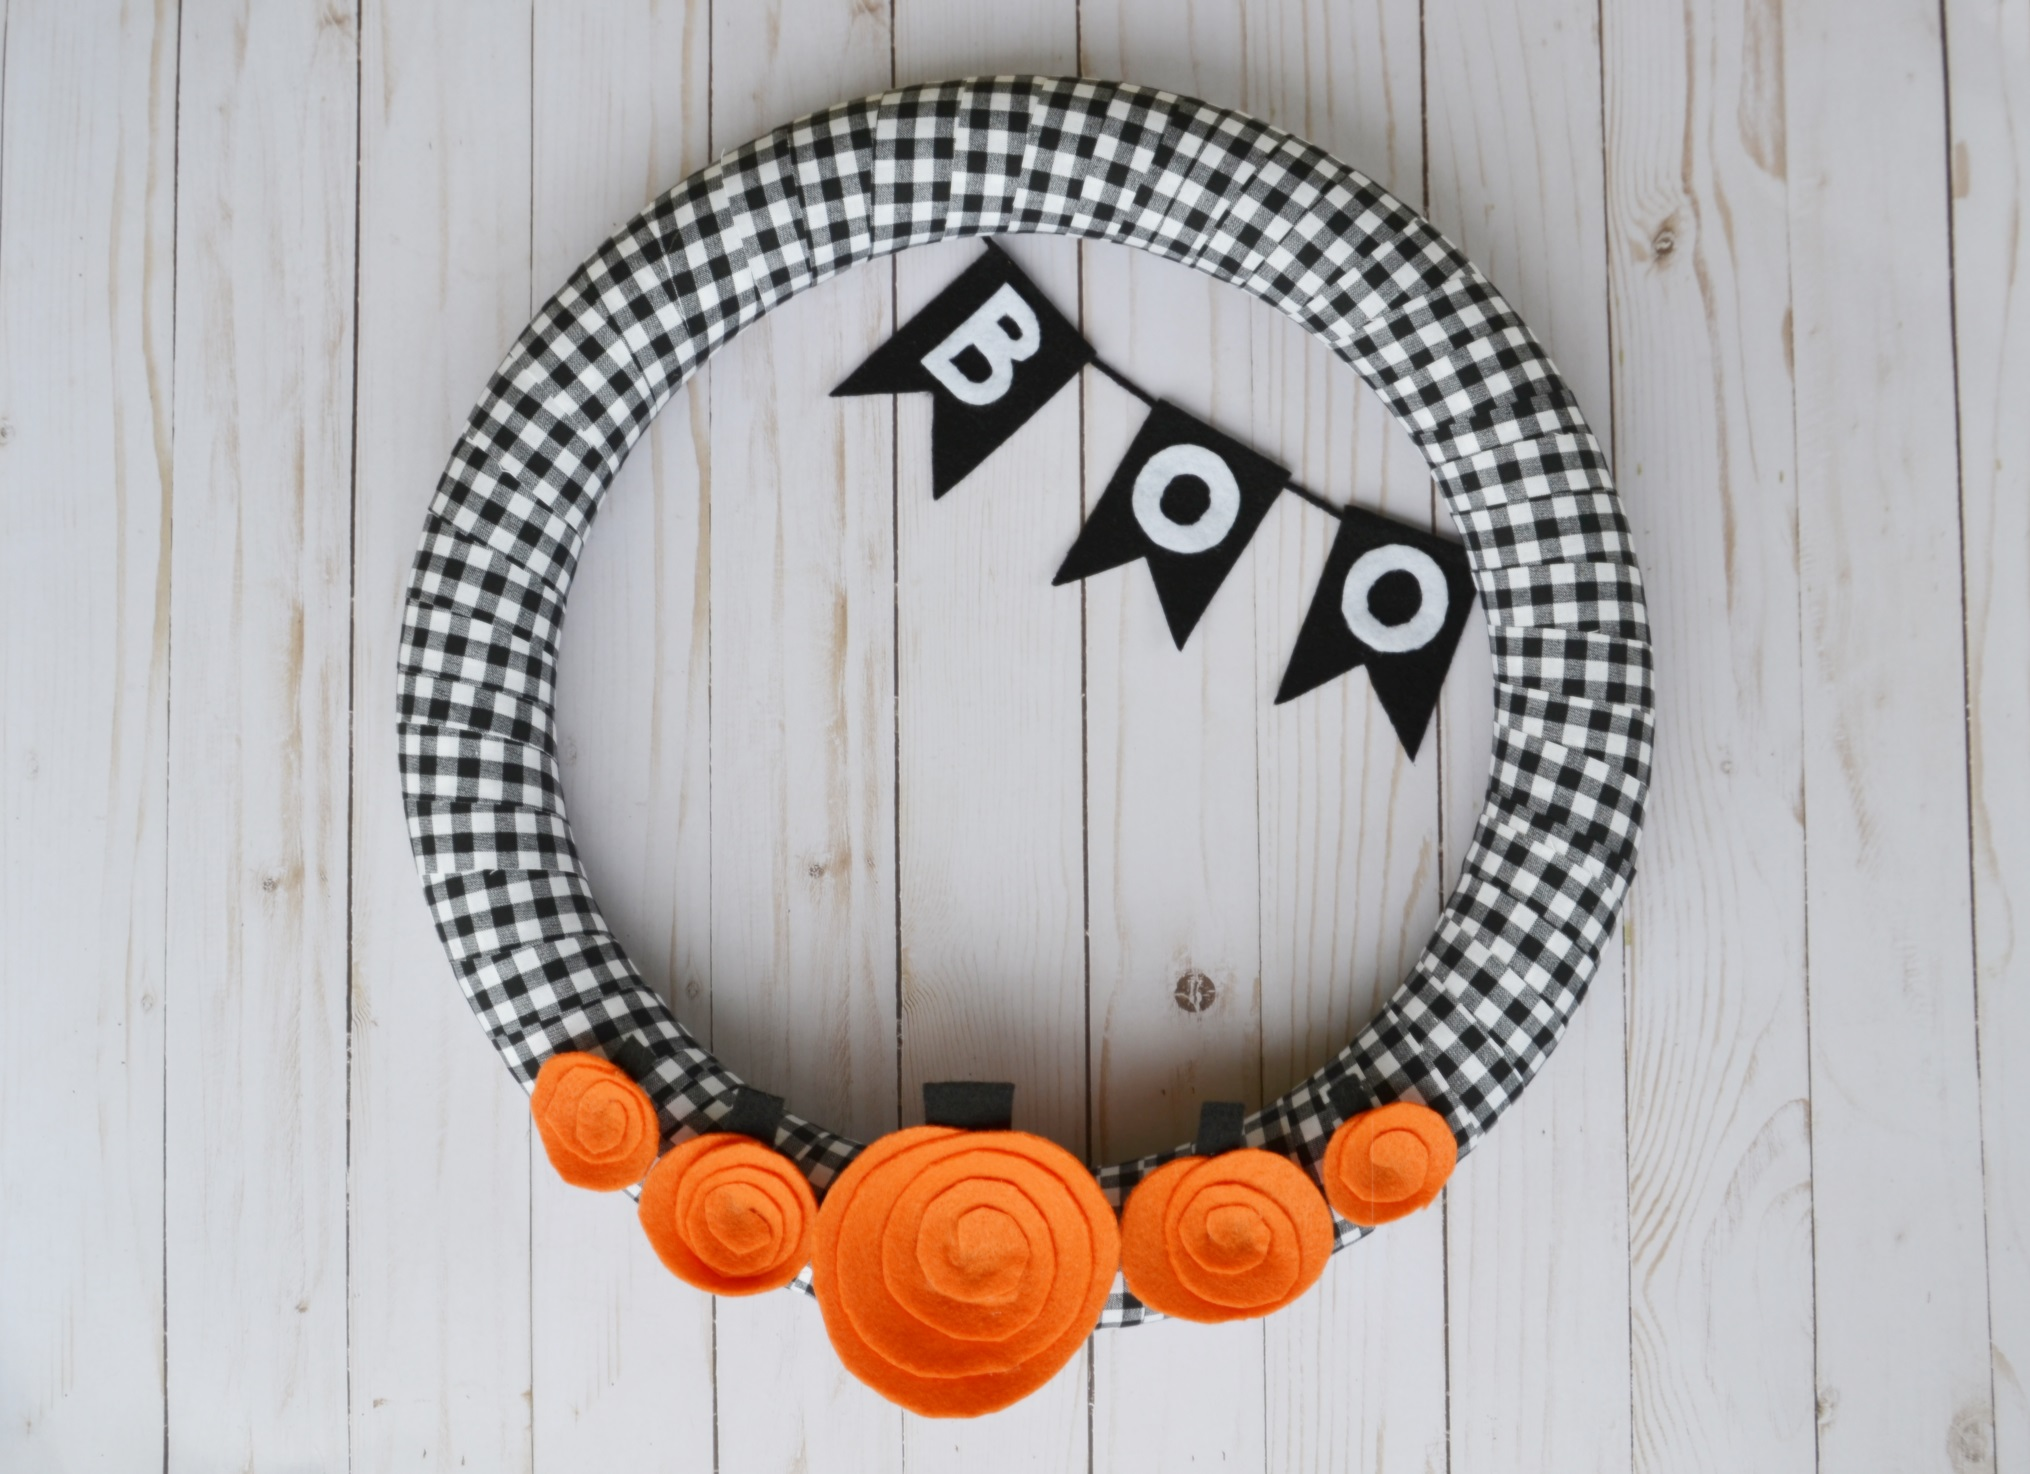 5 Little Pumpkins Wreath